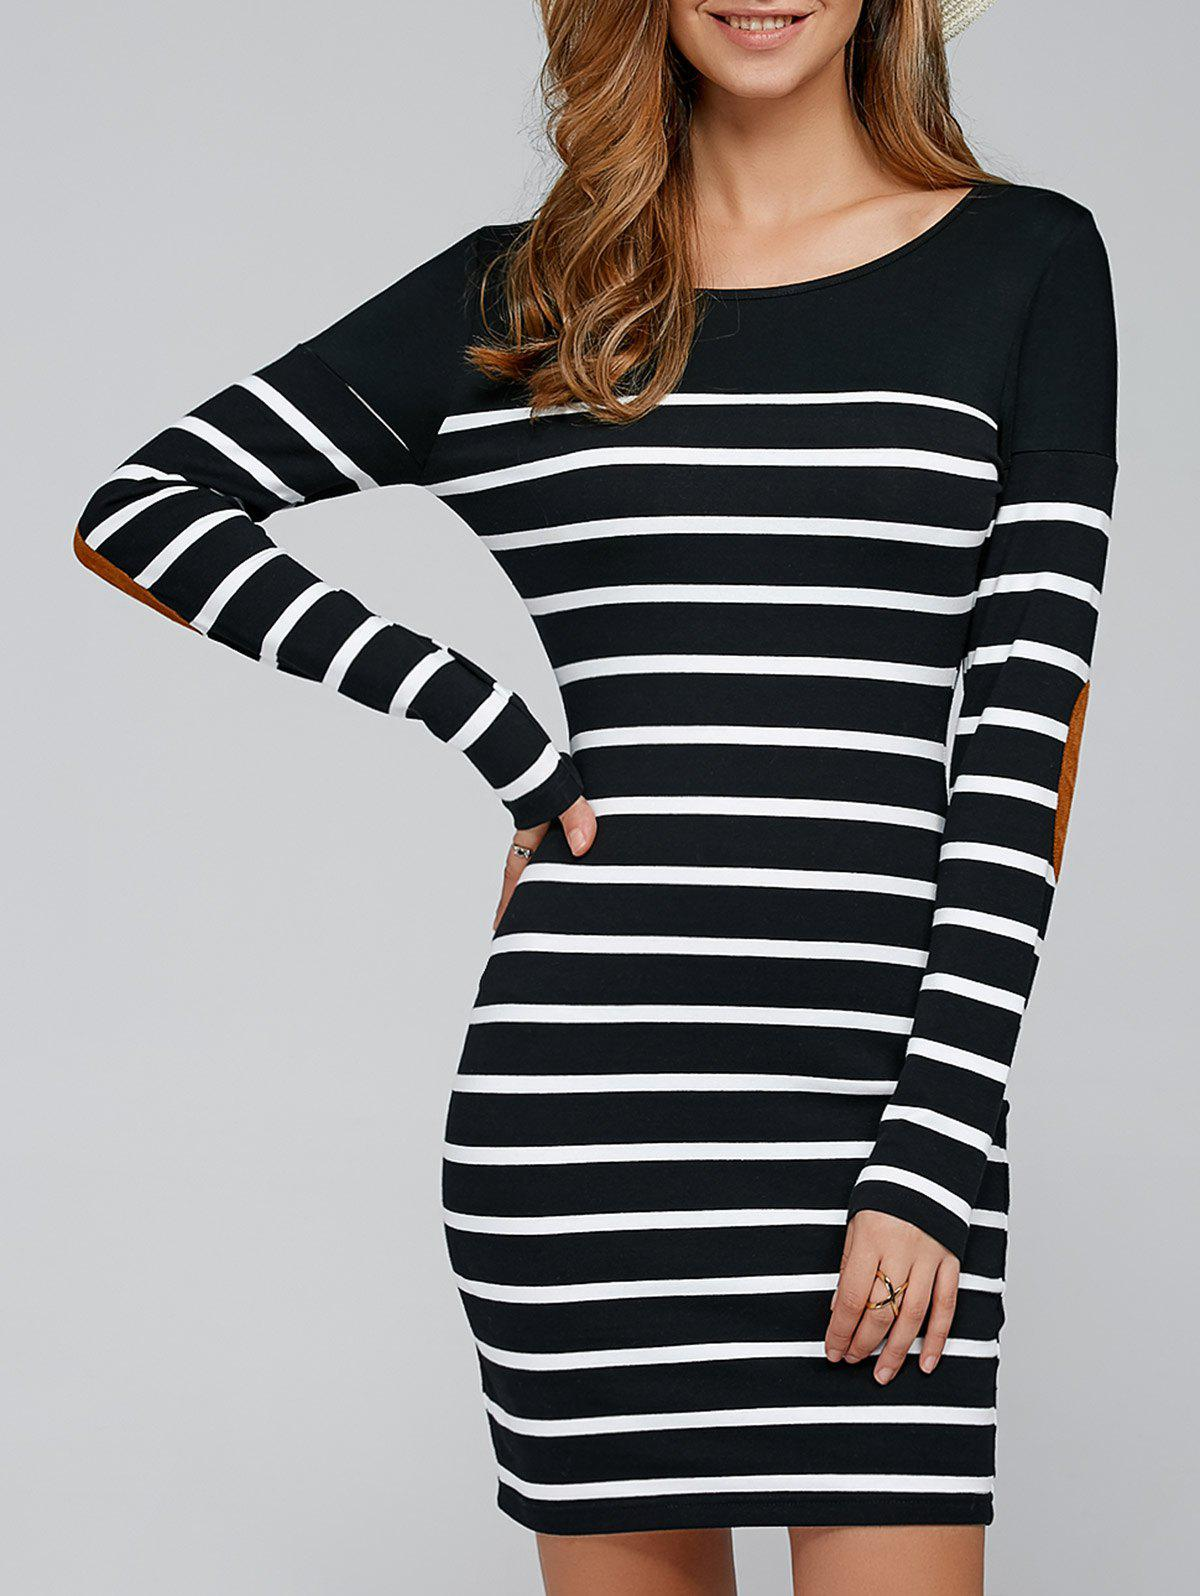 Elbow Patch Striped Long Sleve T-Shirt Dress striped elbow patch curved hem t shirt